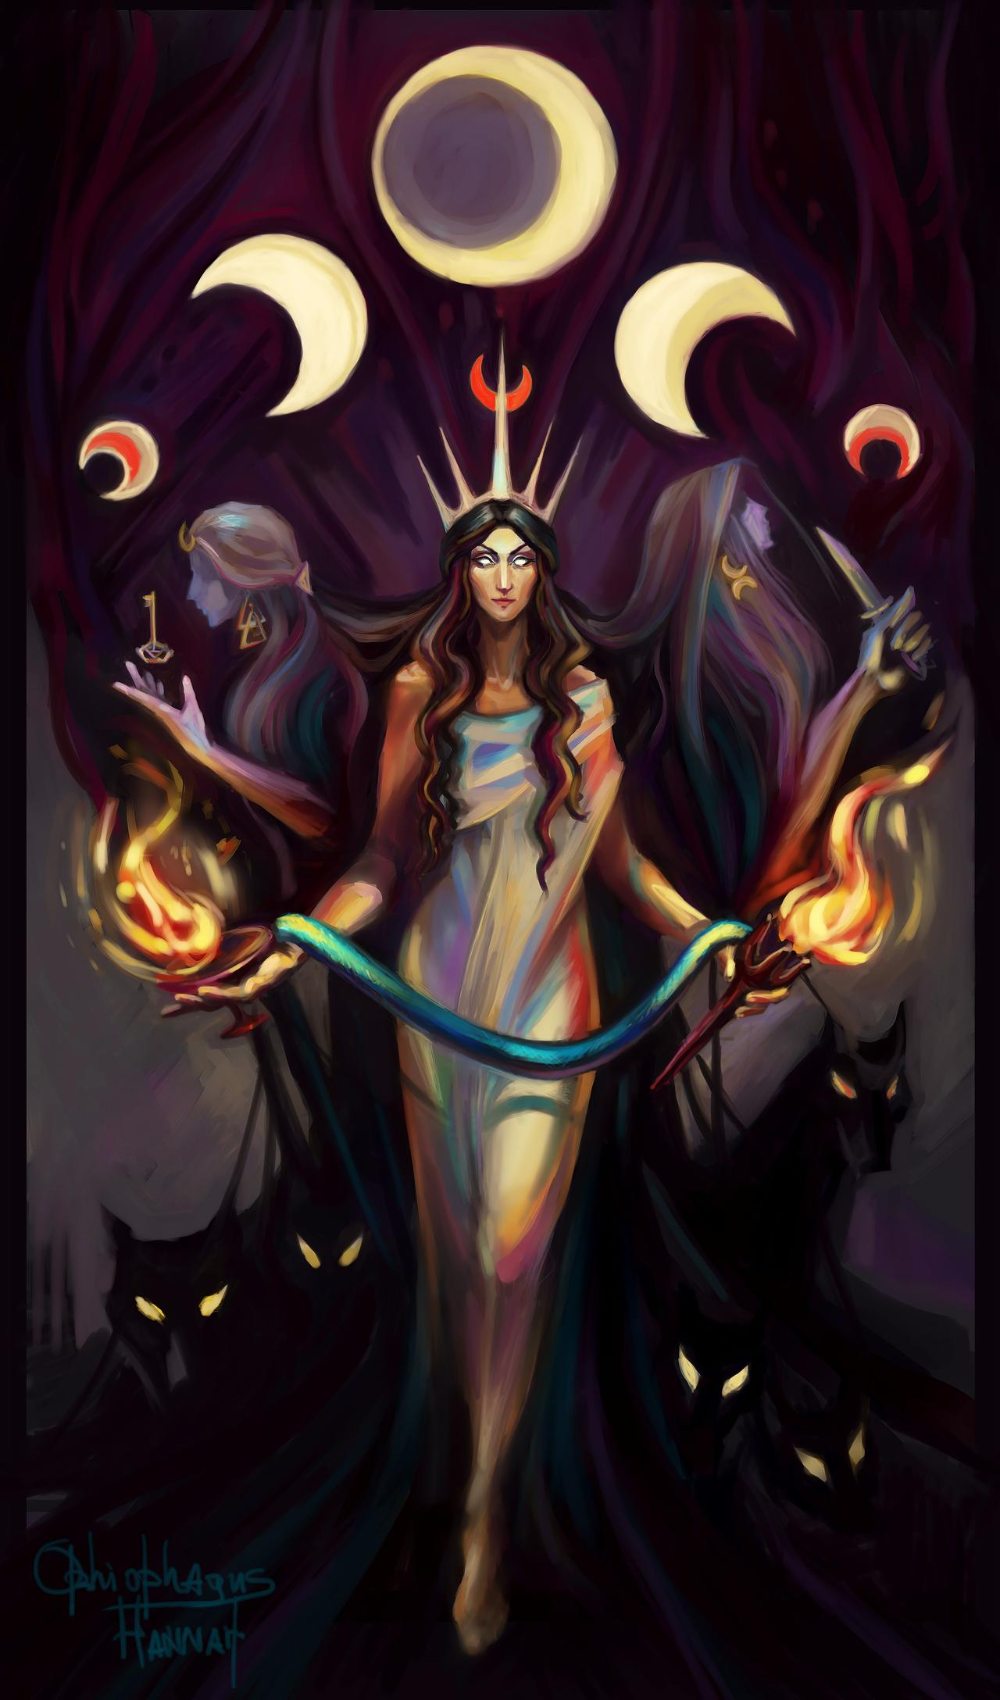 Mysterious and Dark Sides of Hecate by OphiophagusHannahArt on DeviantArt | Wiccan art, Greek mythology art, Goddess art